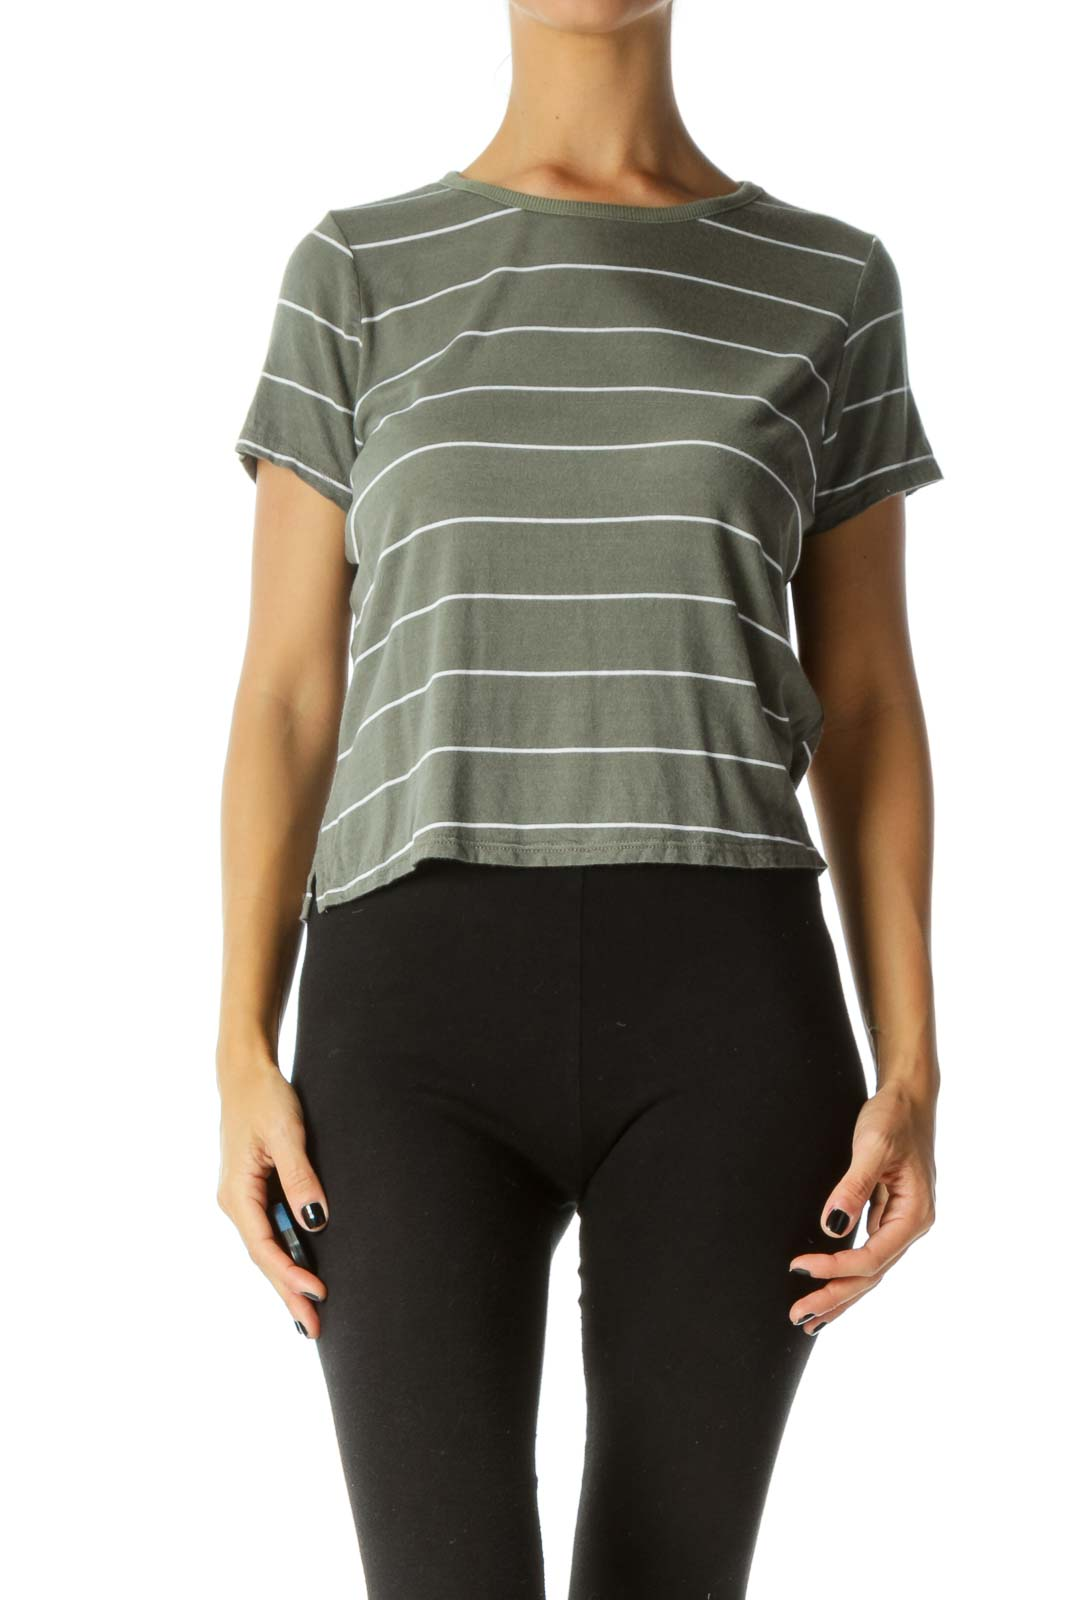 Olive & White Striped Short-Sleeve Tee-Shirt Front